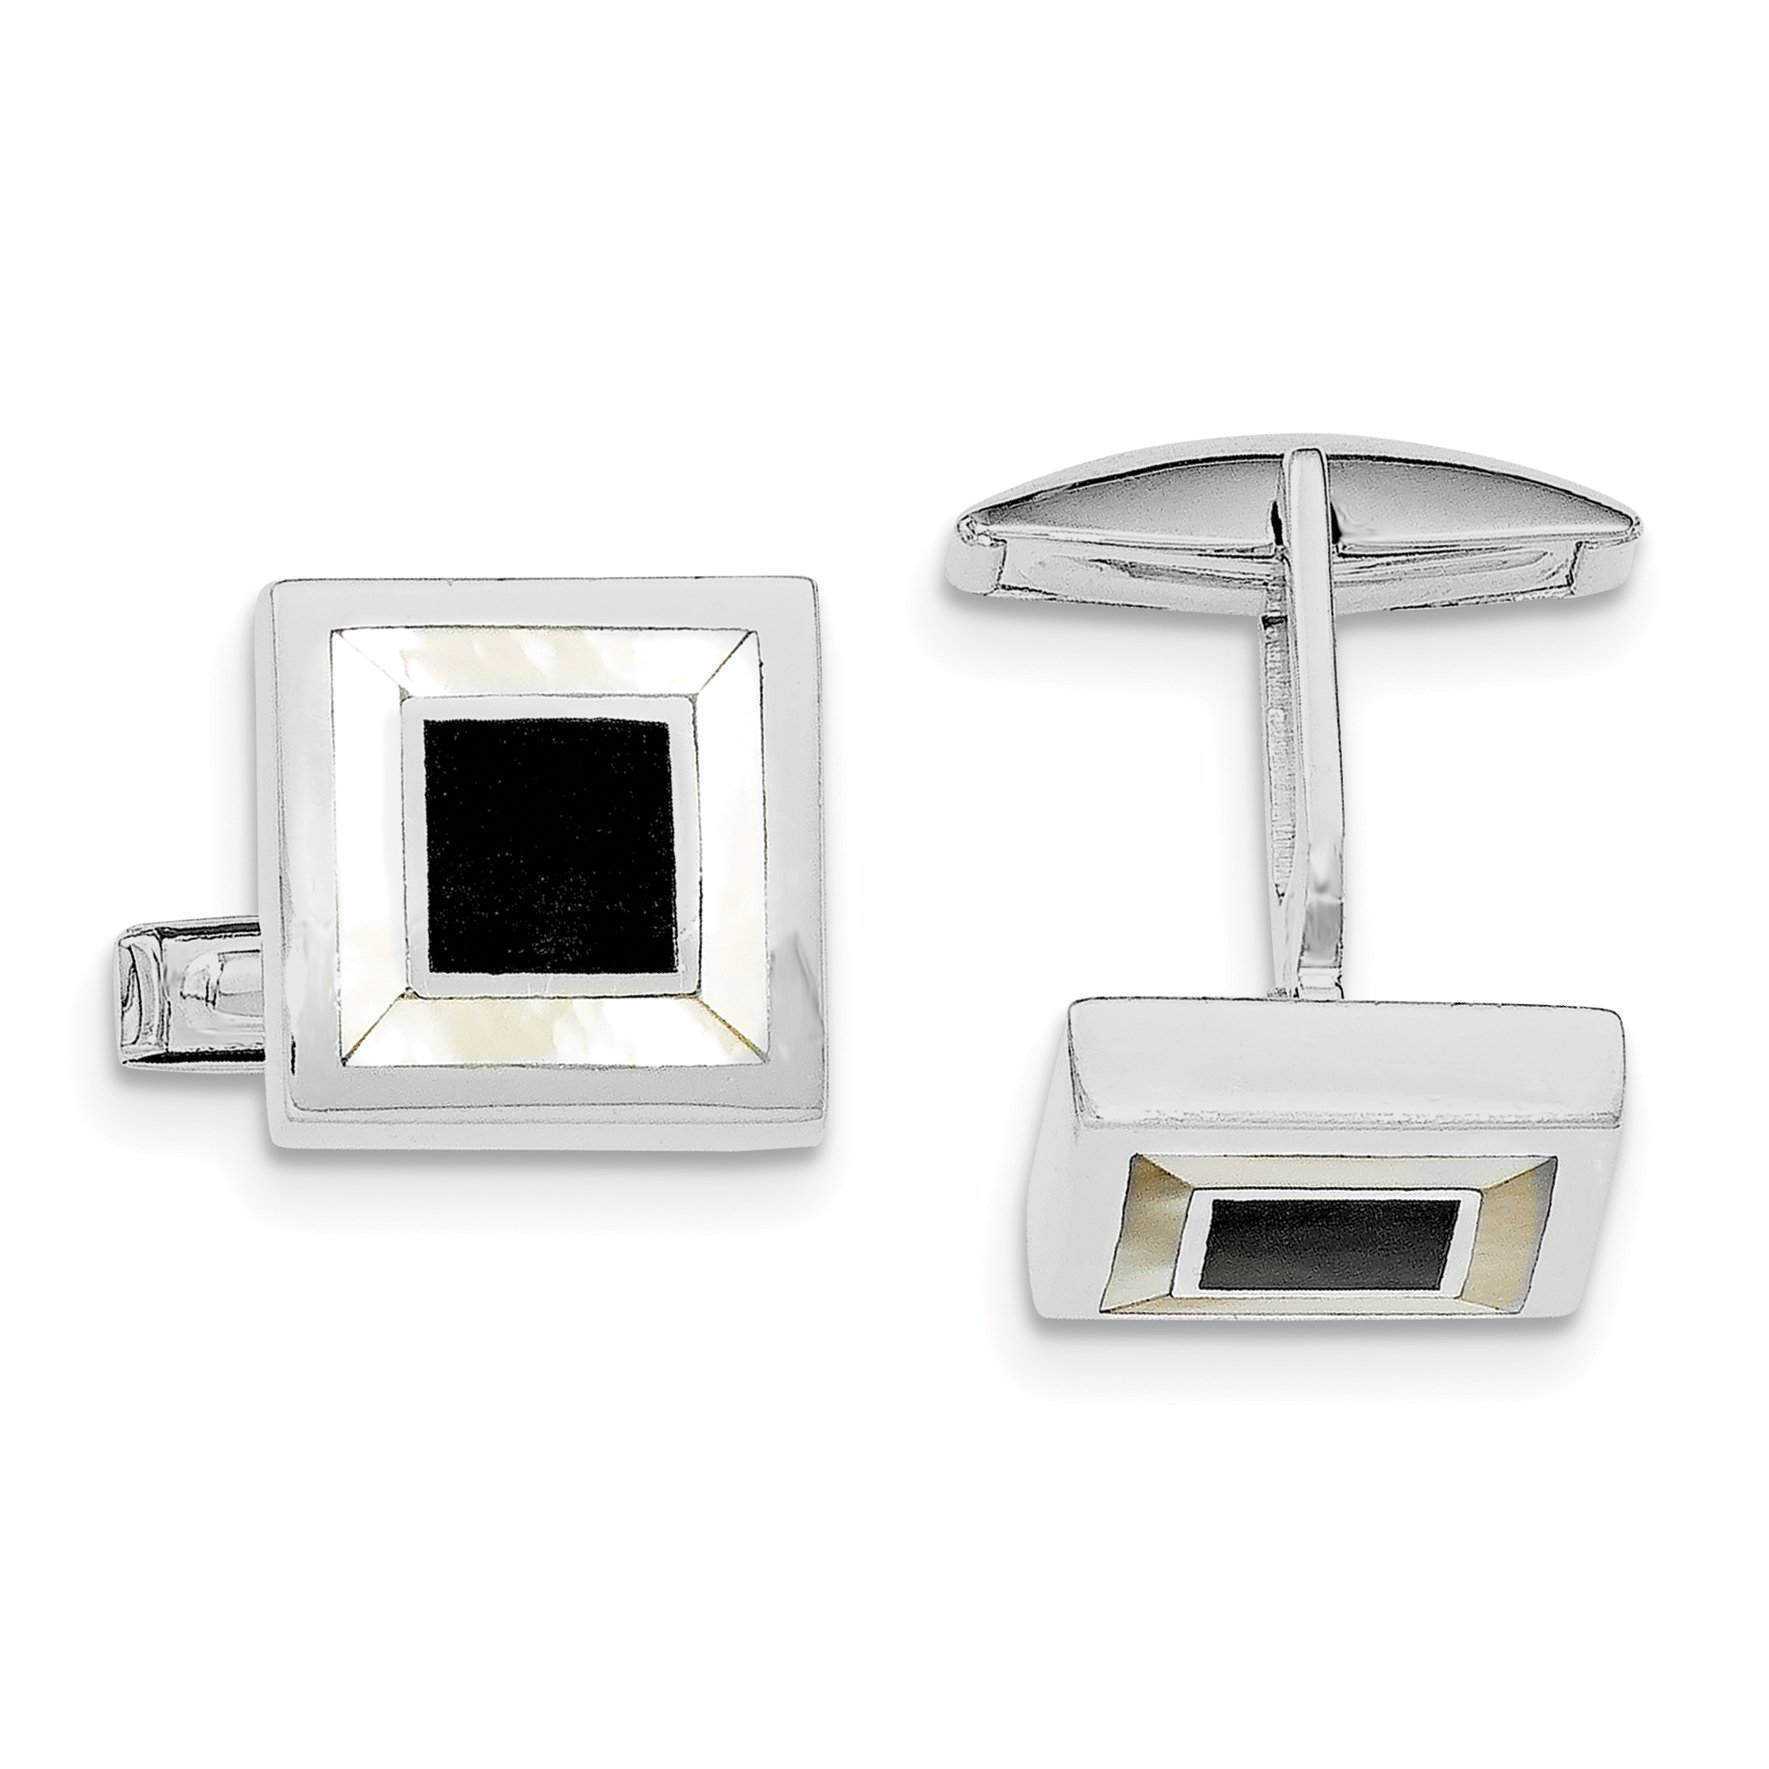 ICE CARATS 925 Sterling Silver Mother Of Pearl Enamel Cuff Links Mens Cufflinks Link Man Fine Jewelry Dad Mens Gift Set